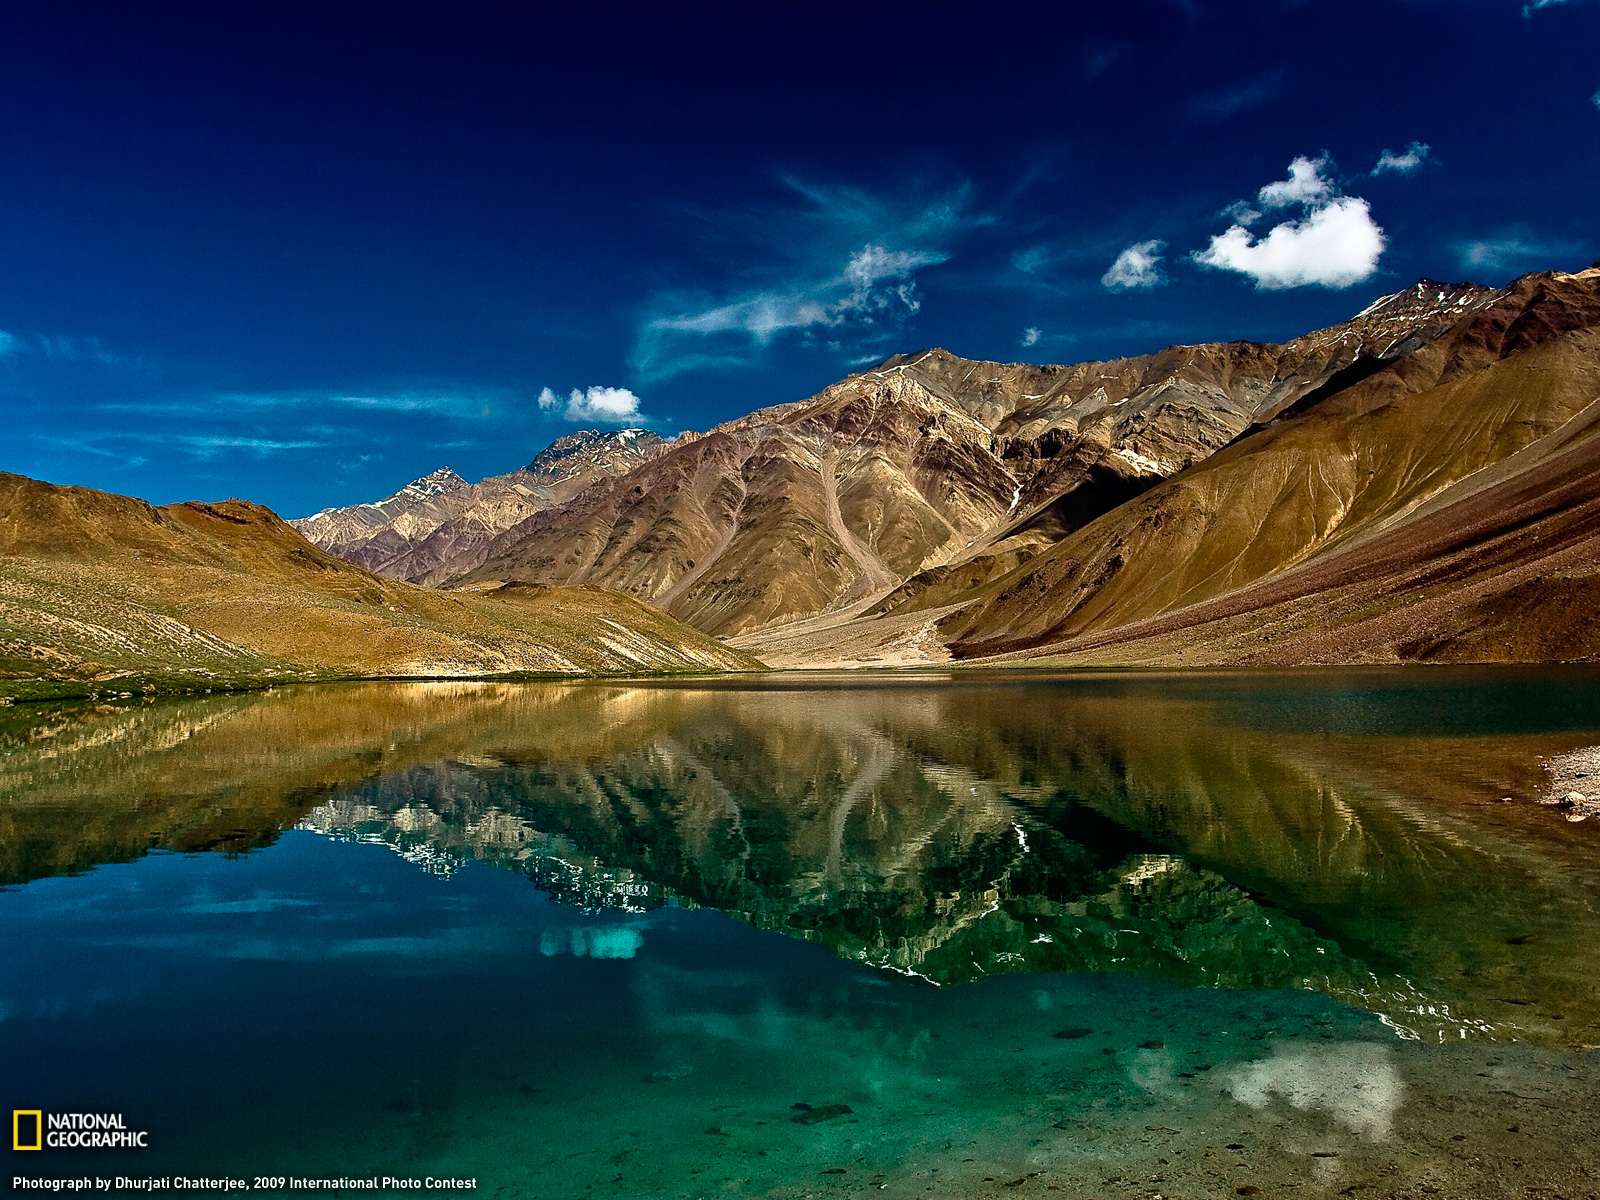 Lake of the Moon Photo India Wallpaper National Geographic Photo 1600x1200